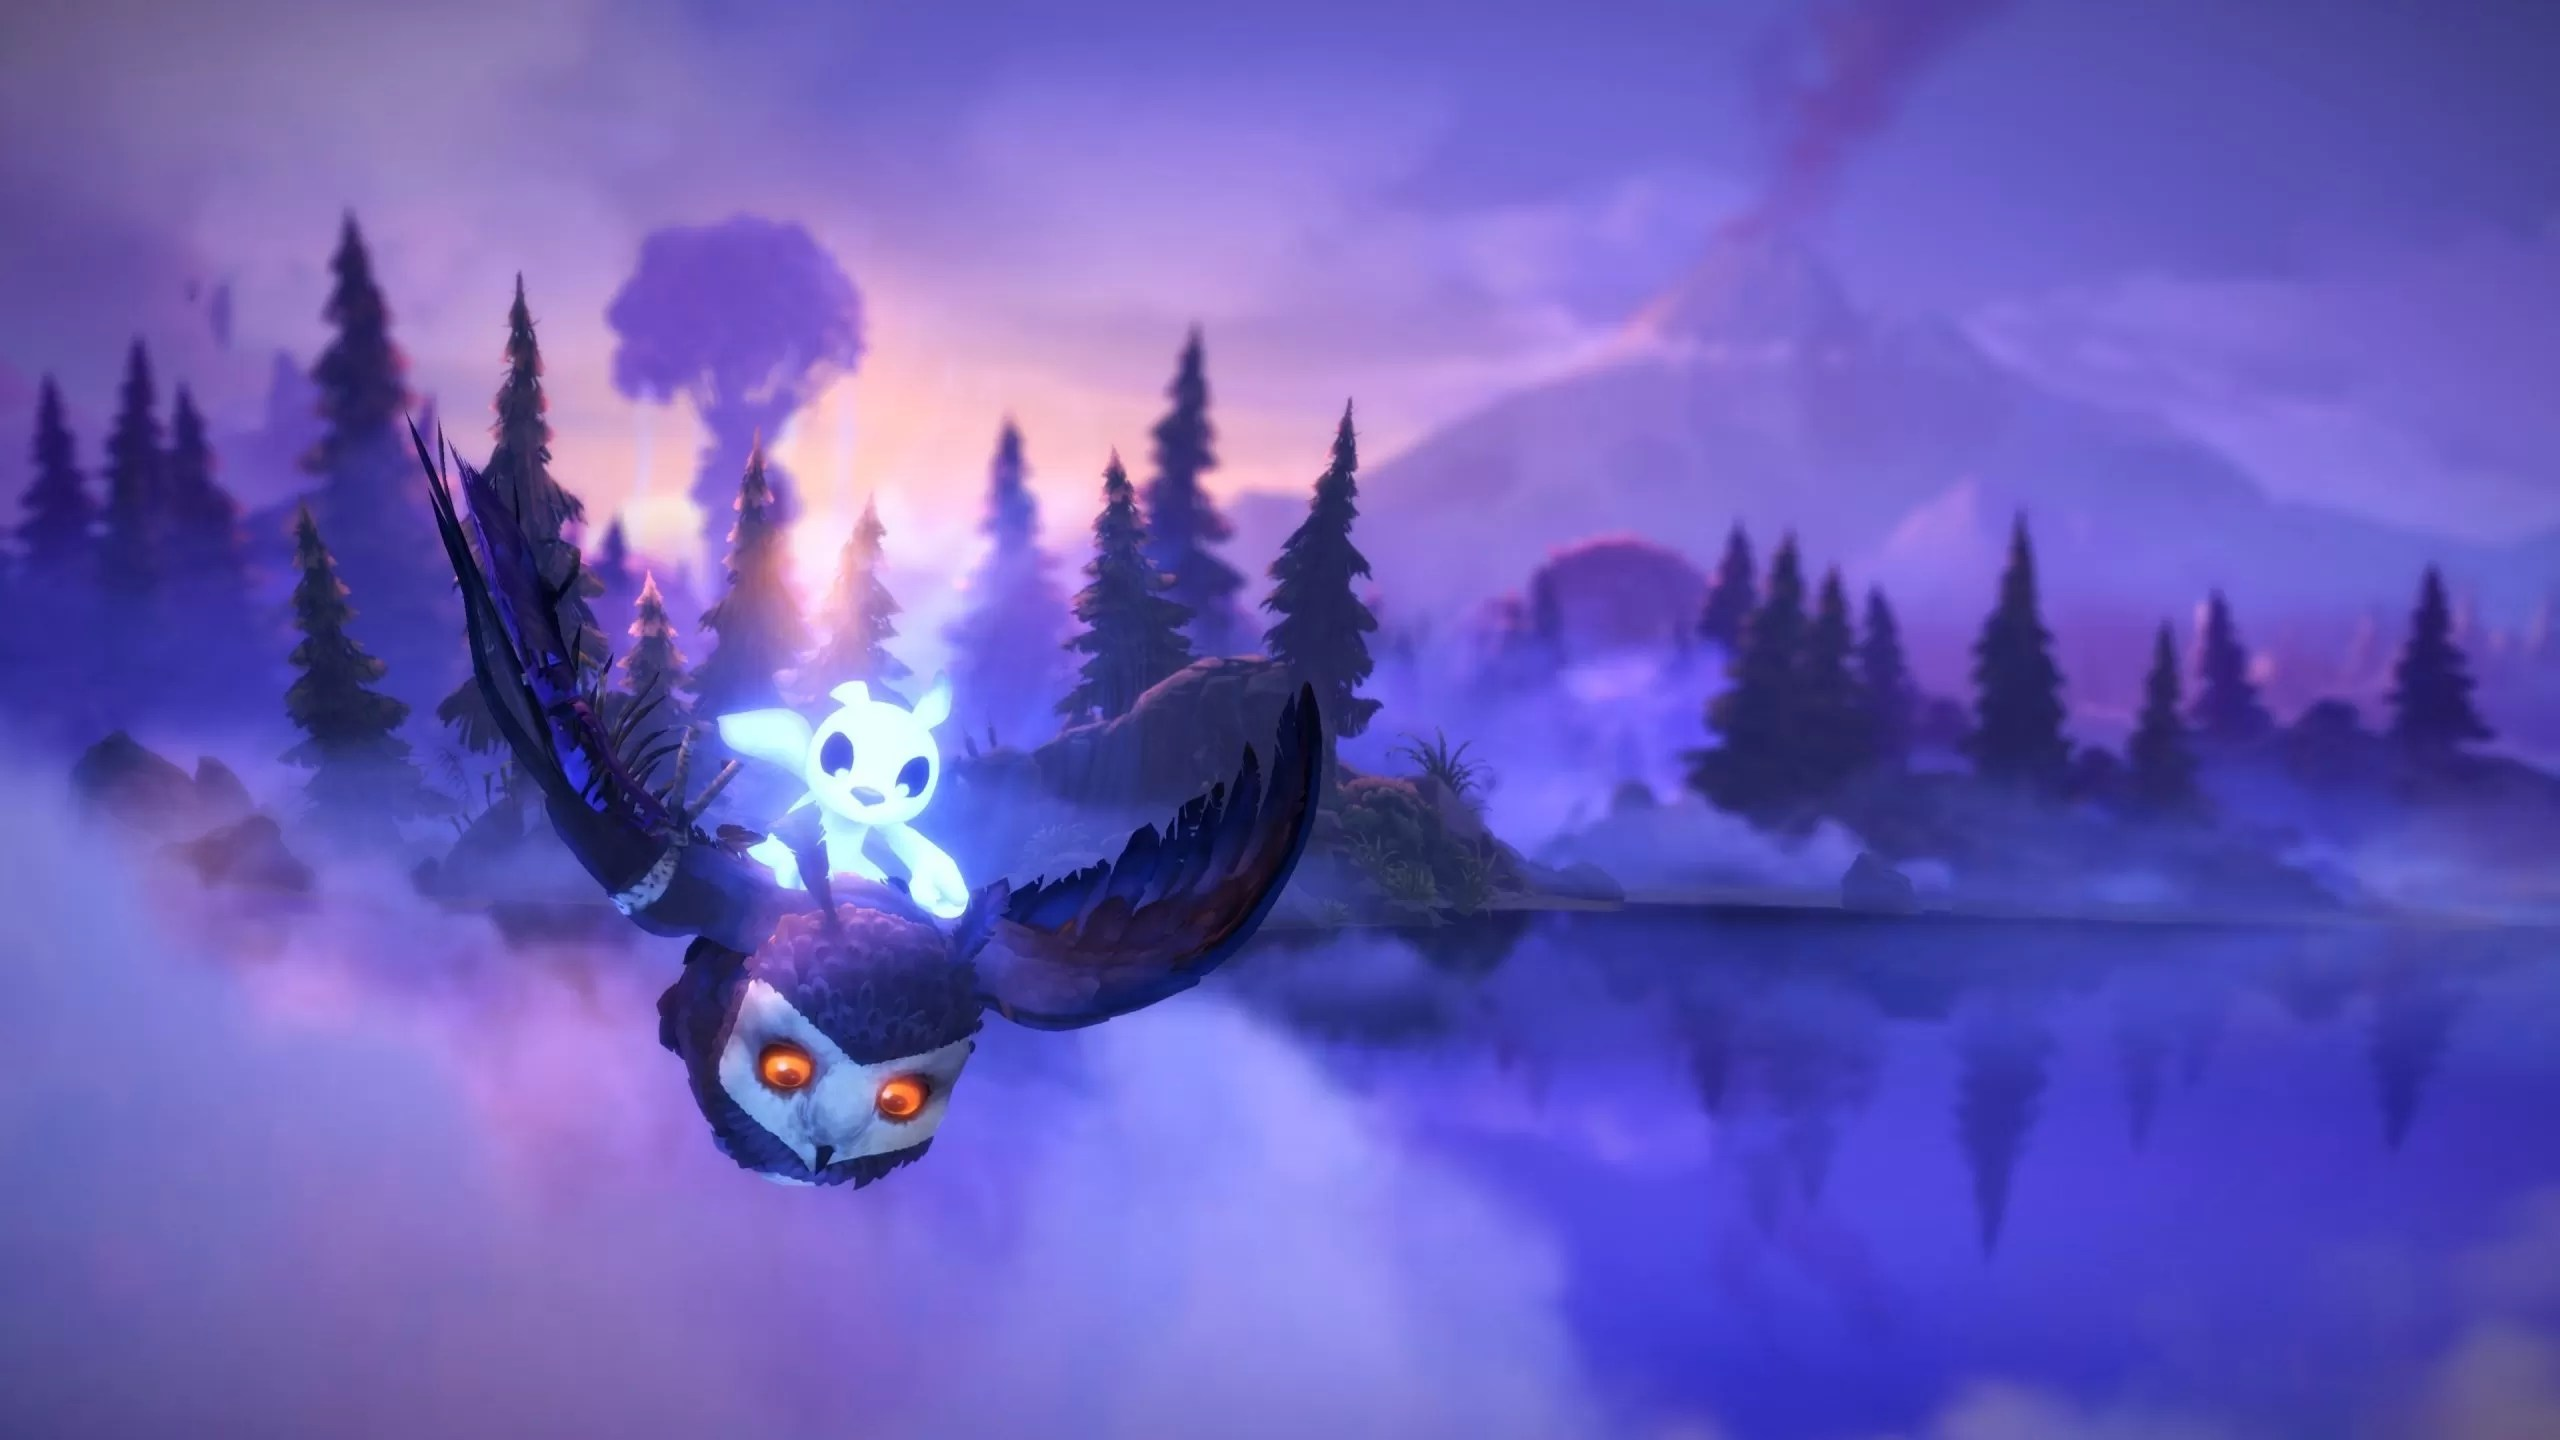 Amazing 2560X1440 Ori Wallpaper Download